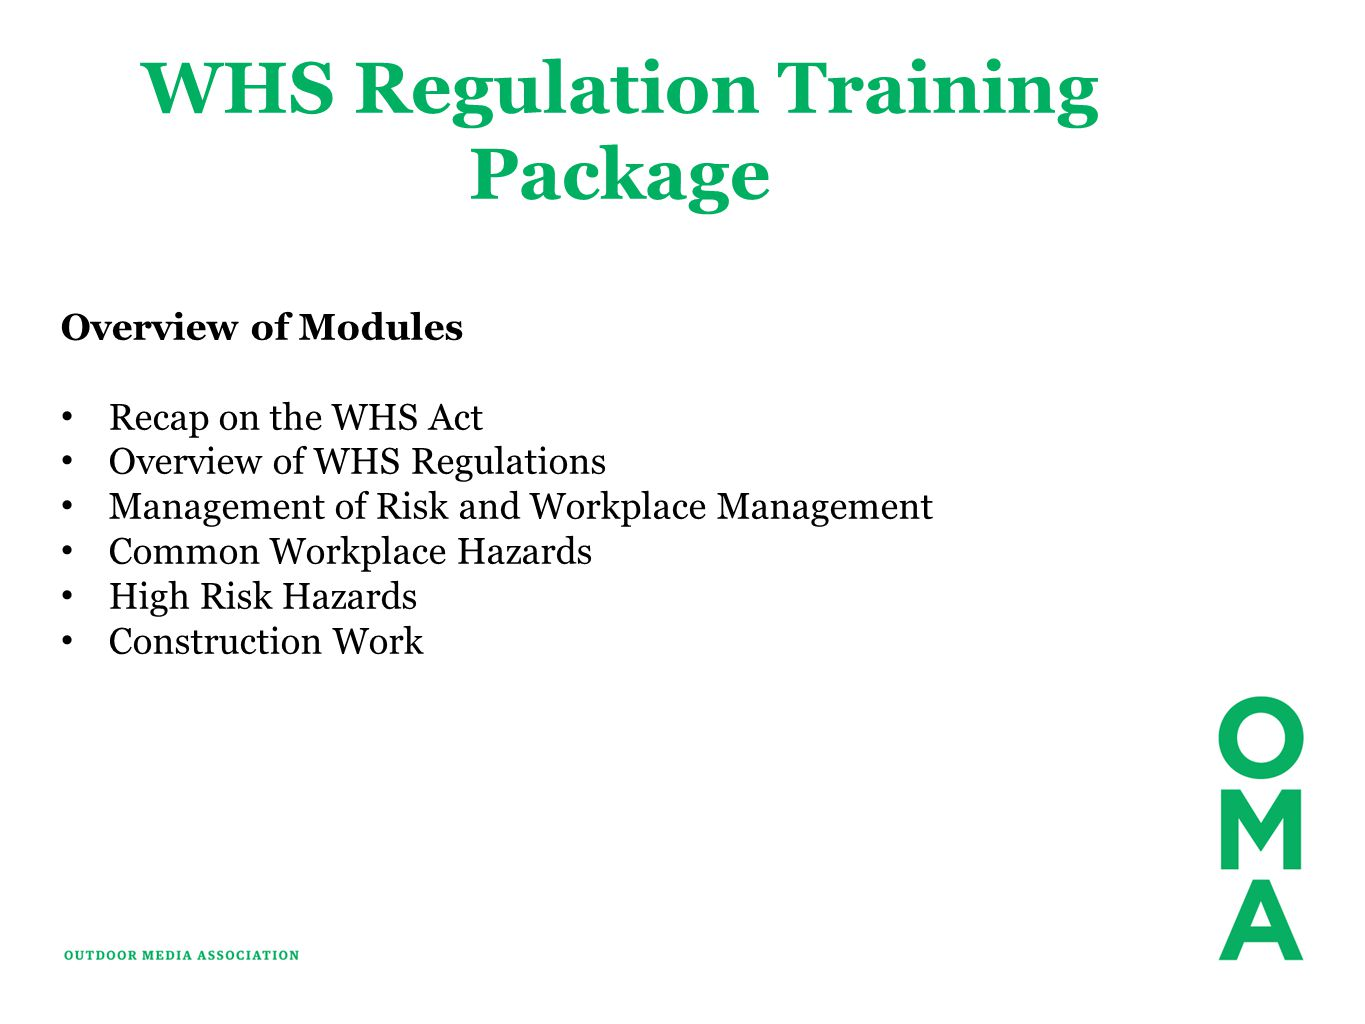 WHS Regulation Training Package